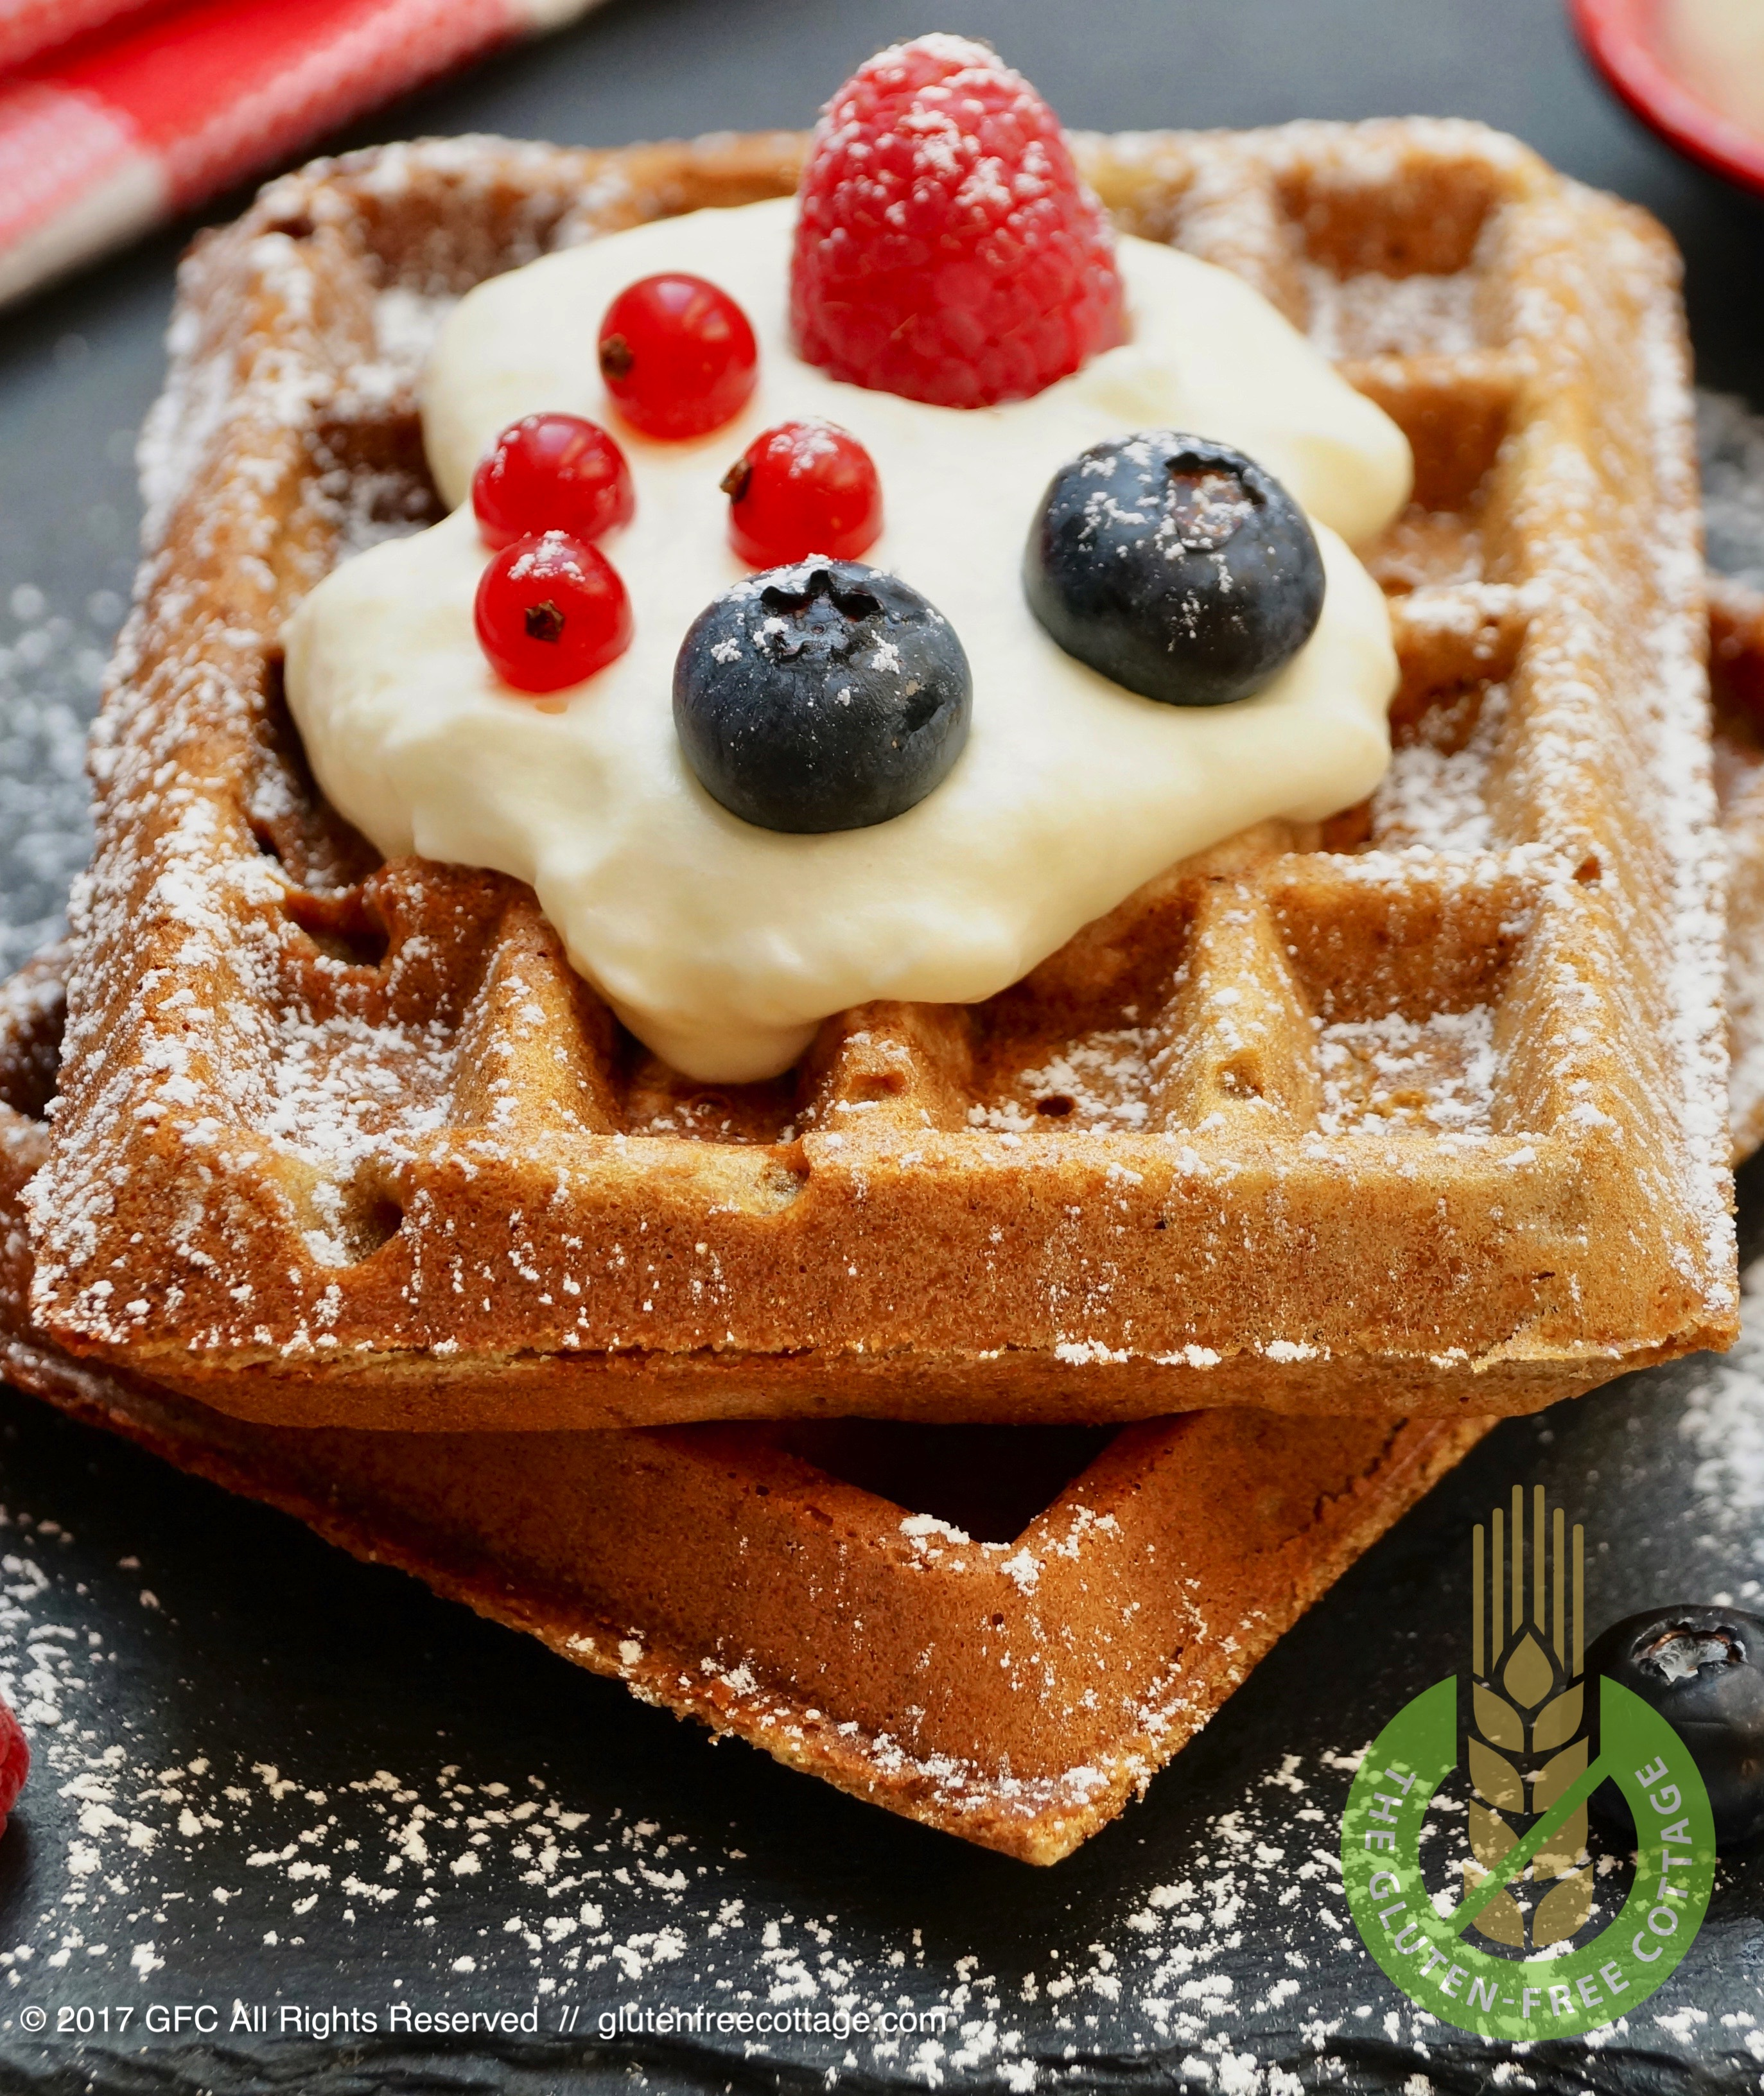 Crispy and tasty gluten-free waffles.